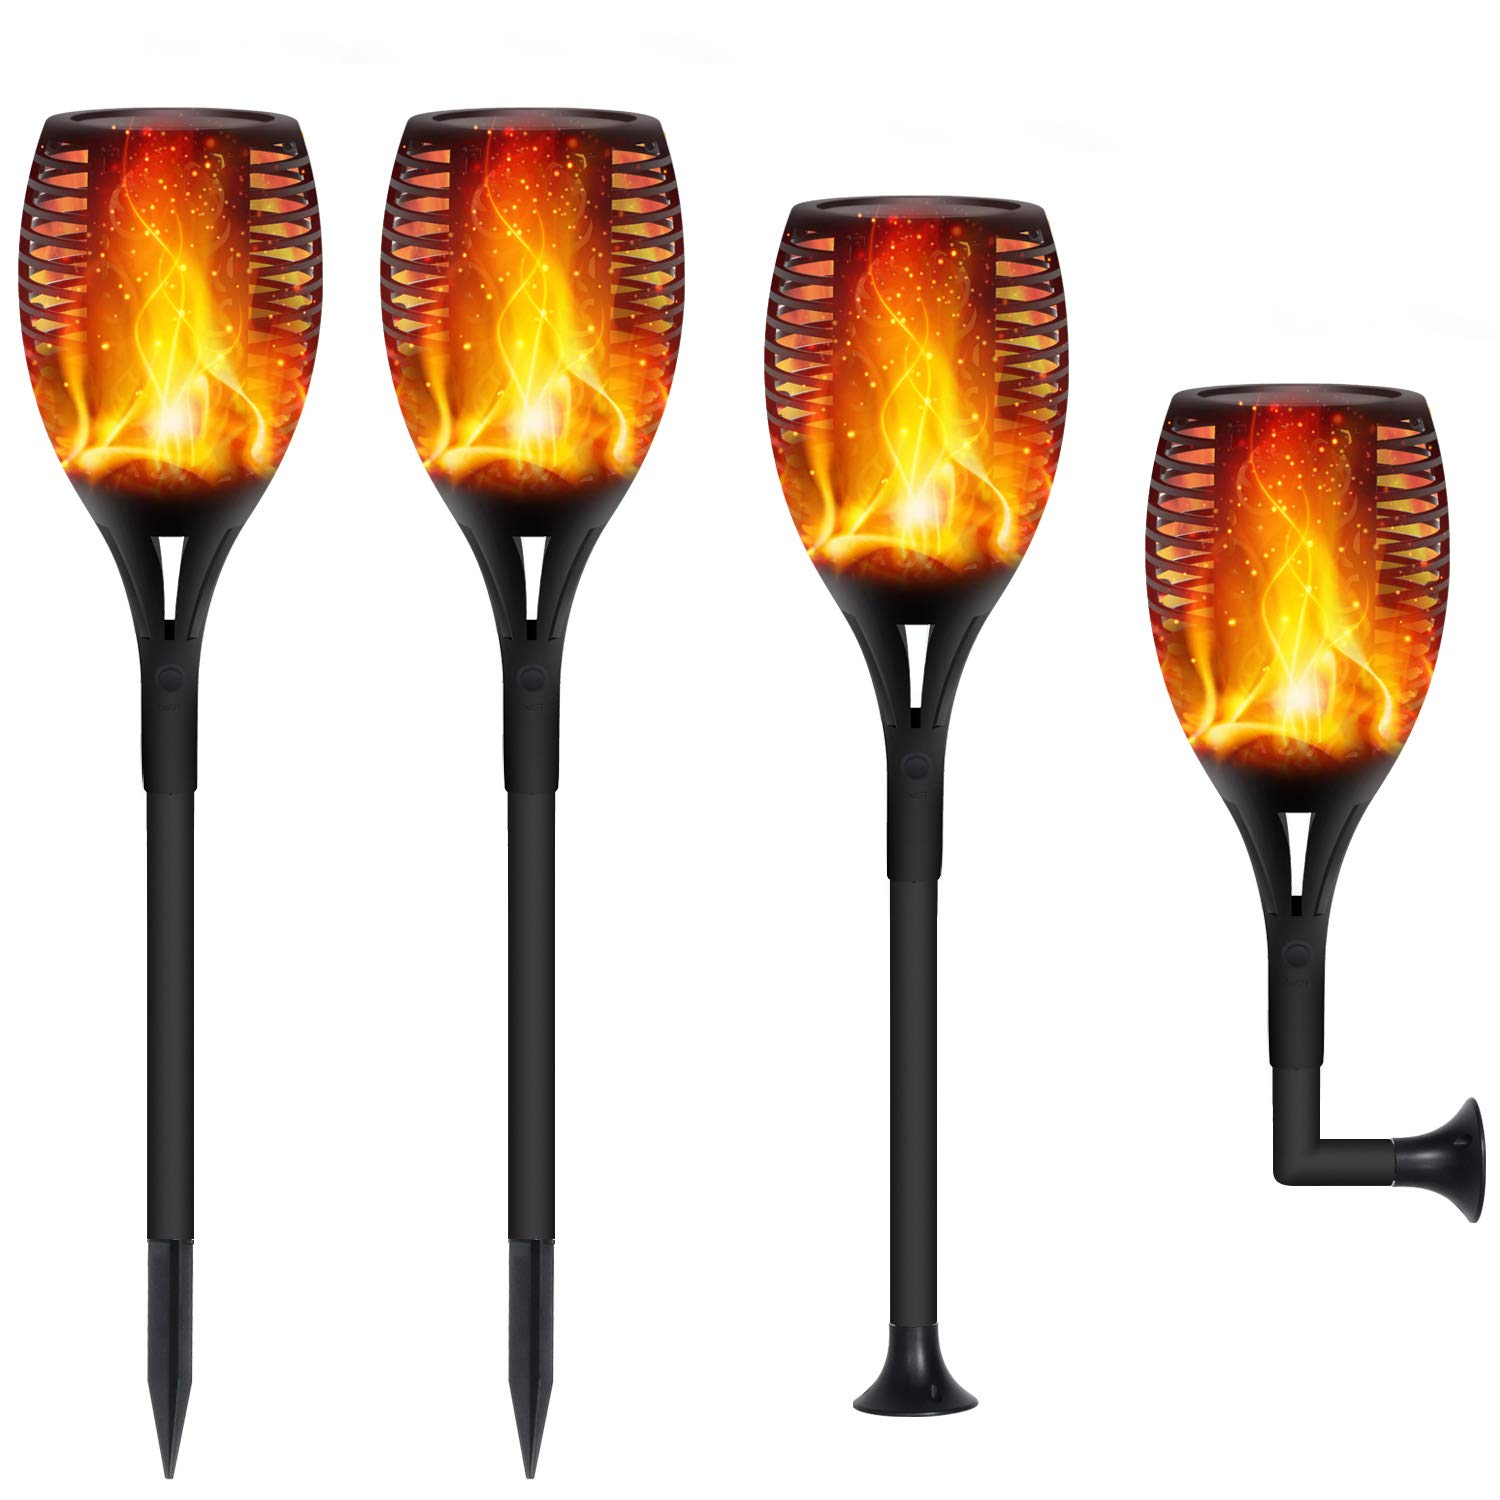 FAISHILAN Solar Flame Flickering Torch, Waterproof Dancing Flame Solar Lights Outdoor, 96 LEDs Solar Tiki Torches, Dusk to Dawn Solar Torch Light, 4 Pack by FAISHILAN